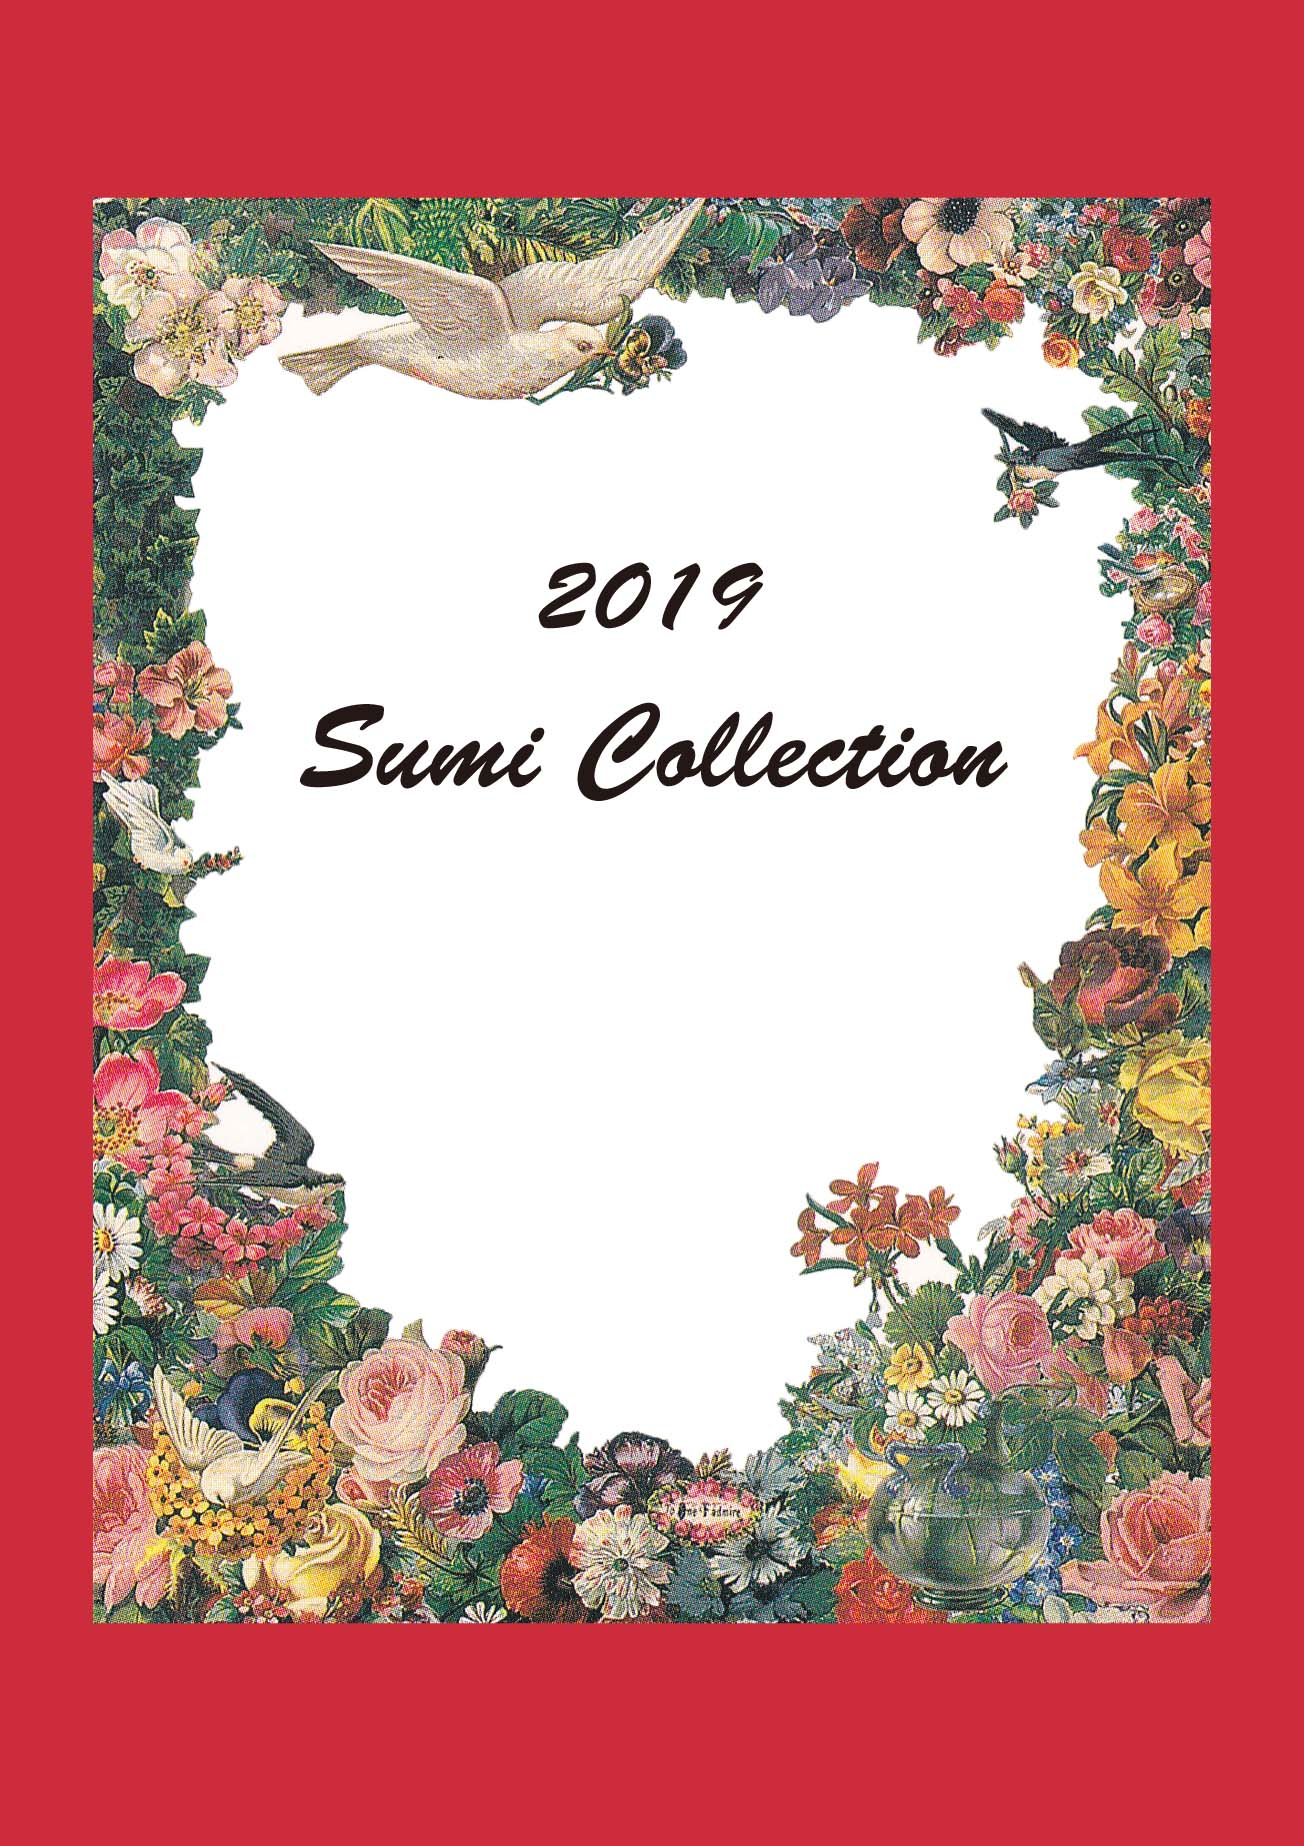 Sumi collection